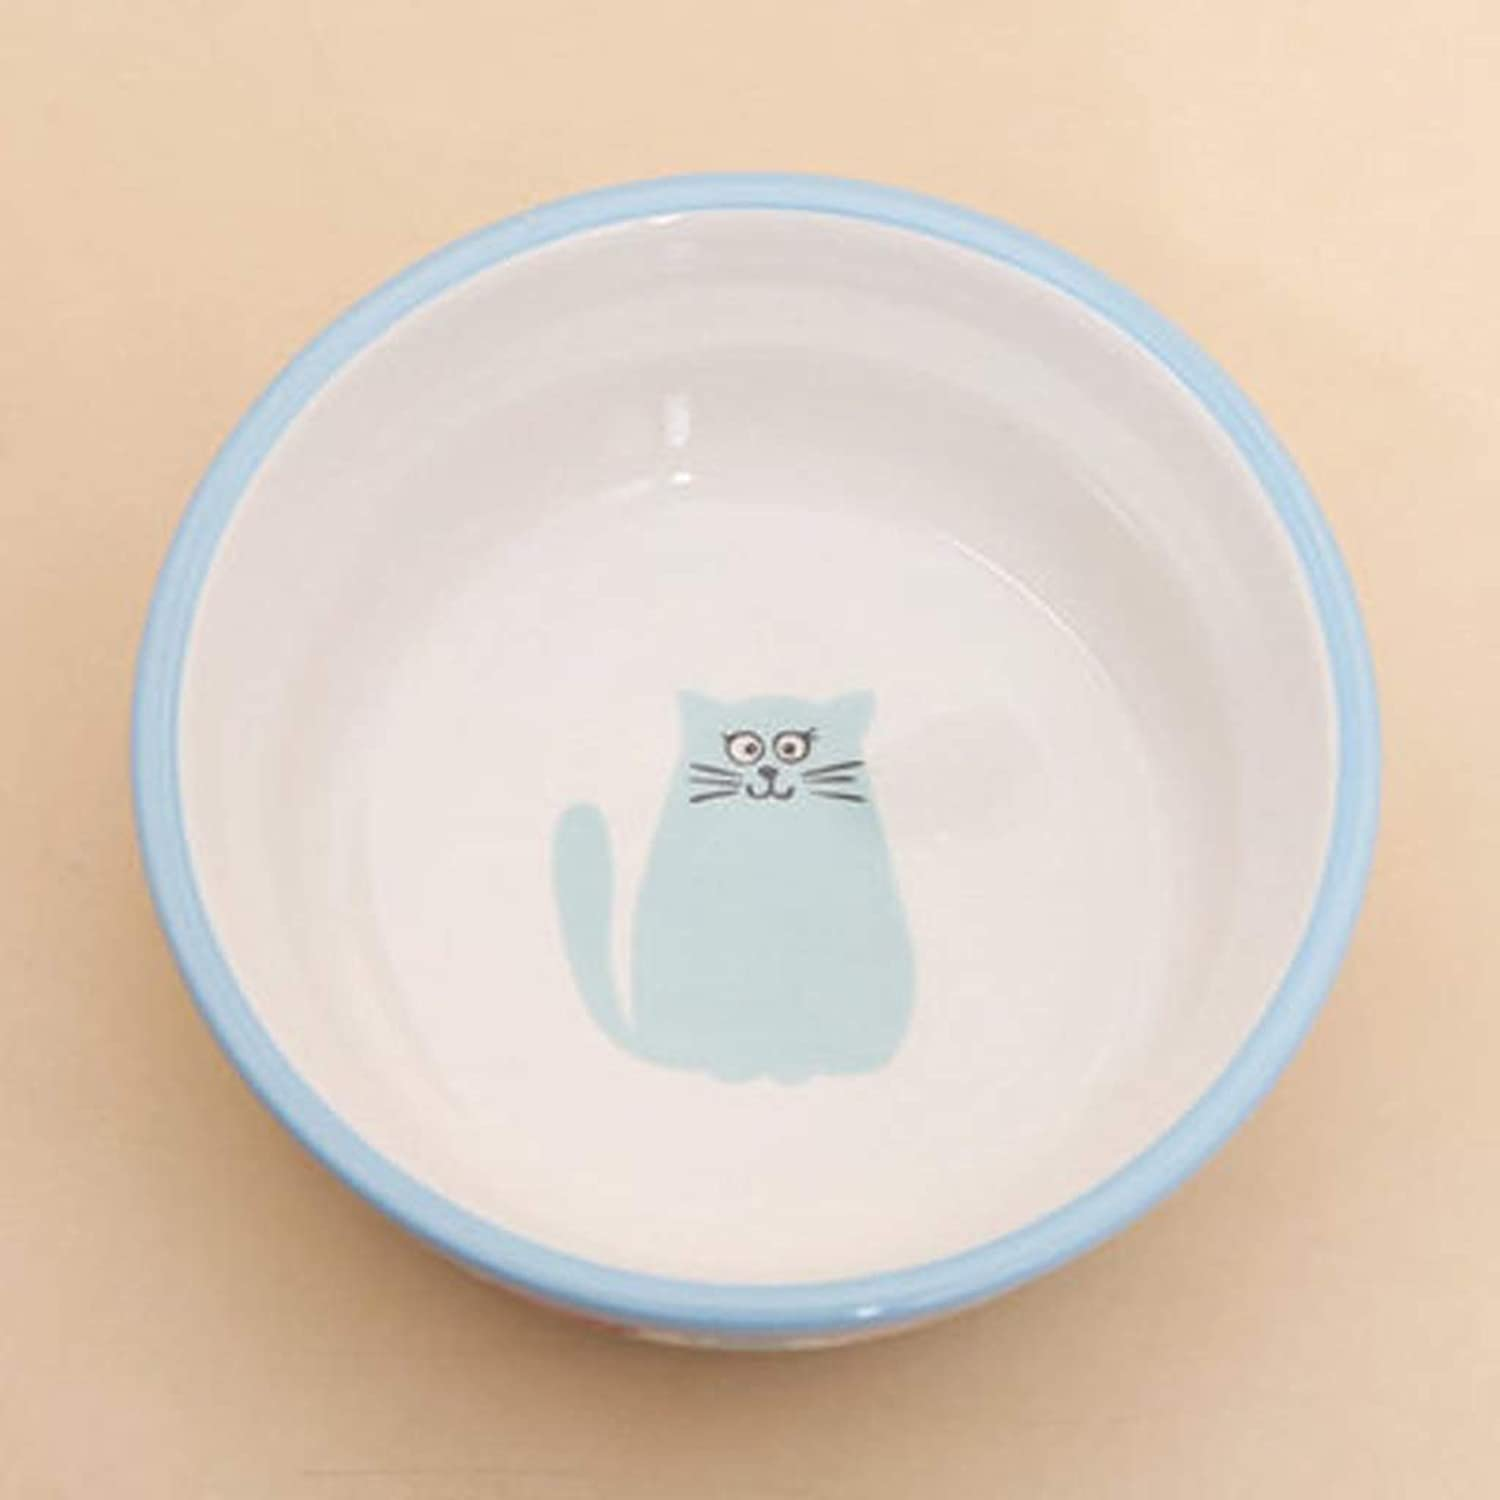 HVTKL Creative Kitten Ceramic Bowl Cat Food Dog Food Bowl bluee Pet Supplies